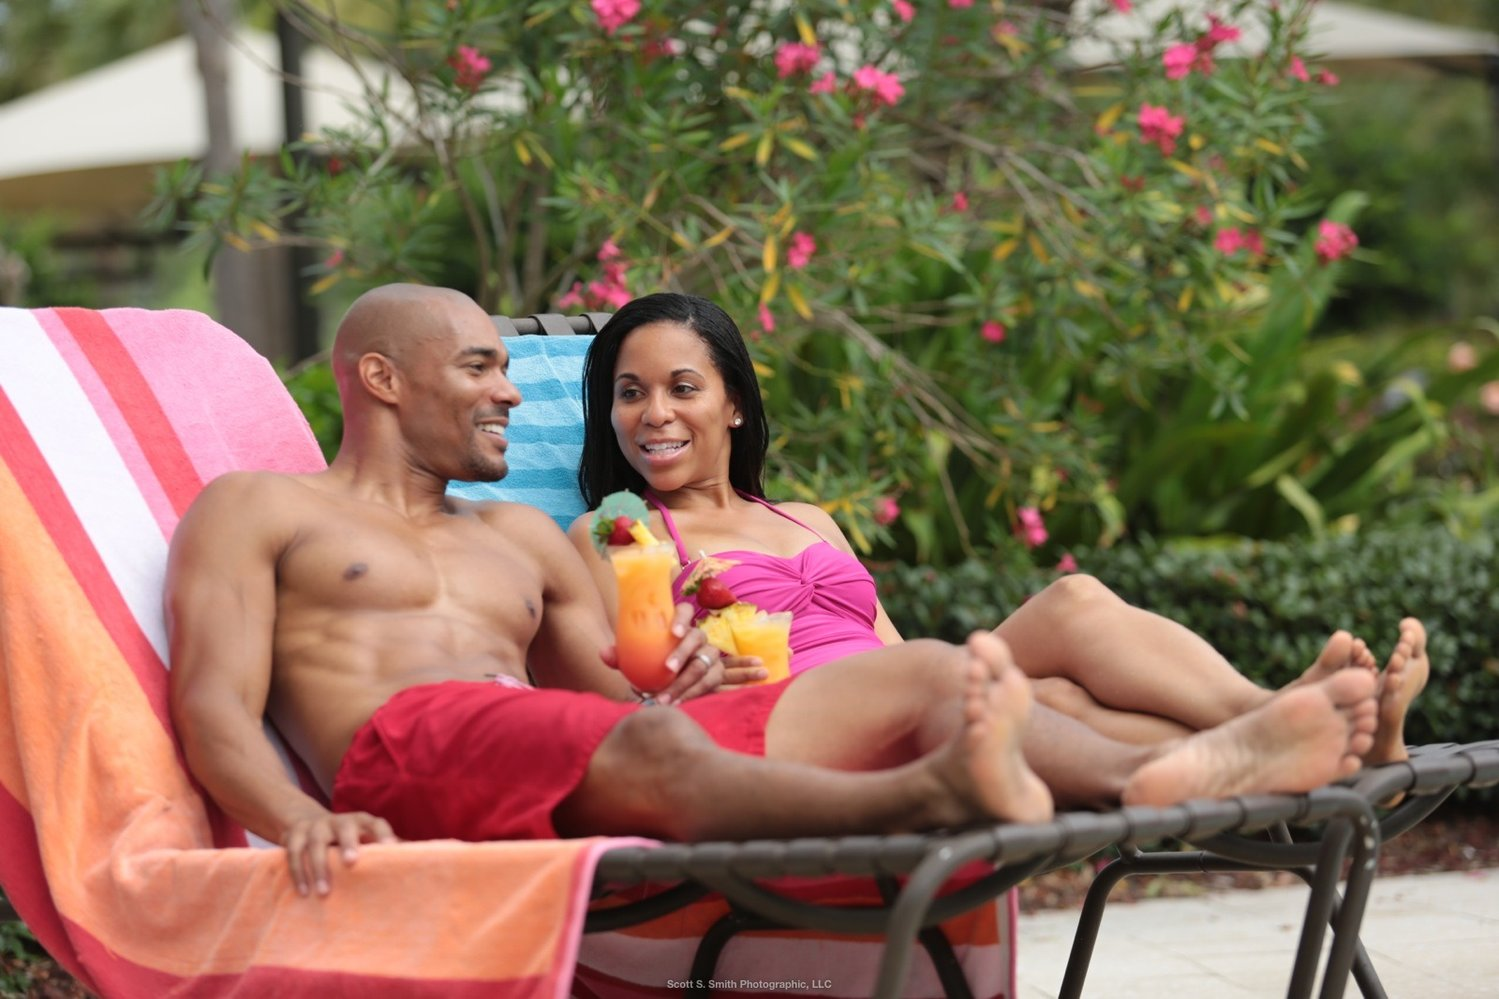 Relaxing poolside at Nocatee, residents can escape the cares of the world at large.